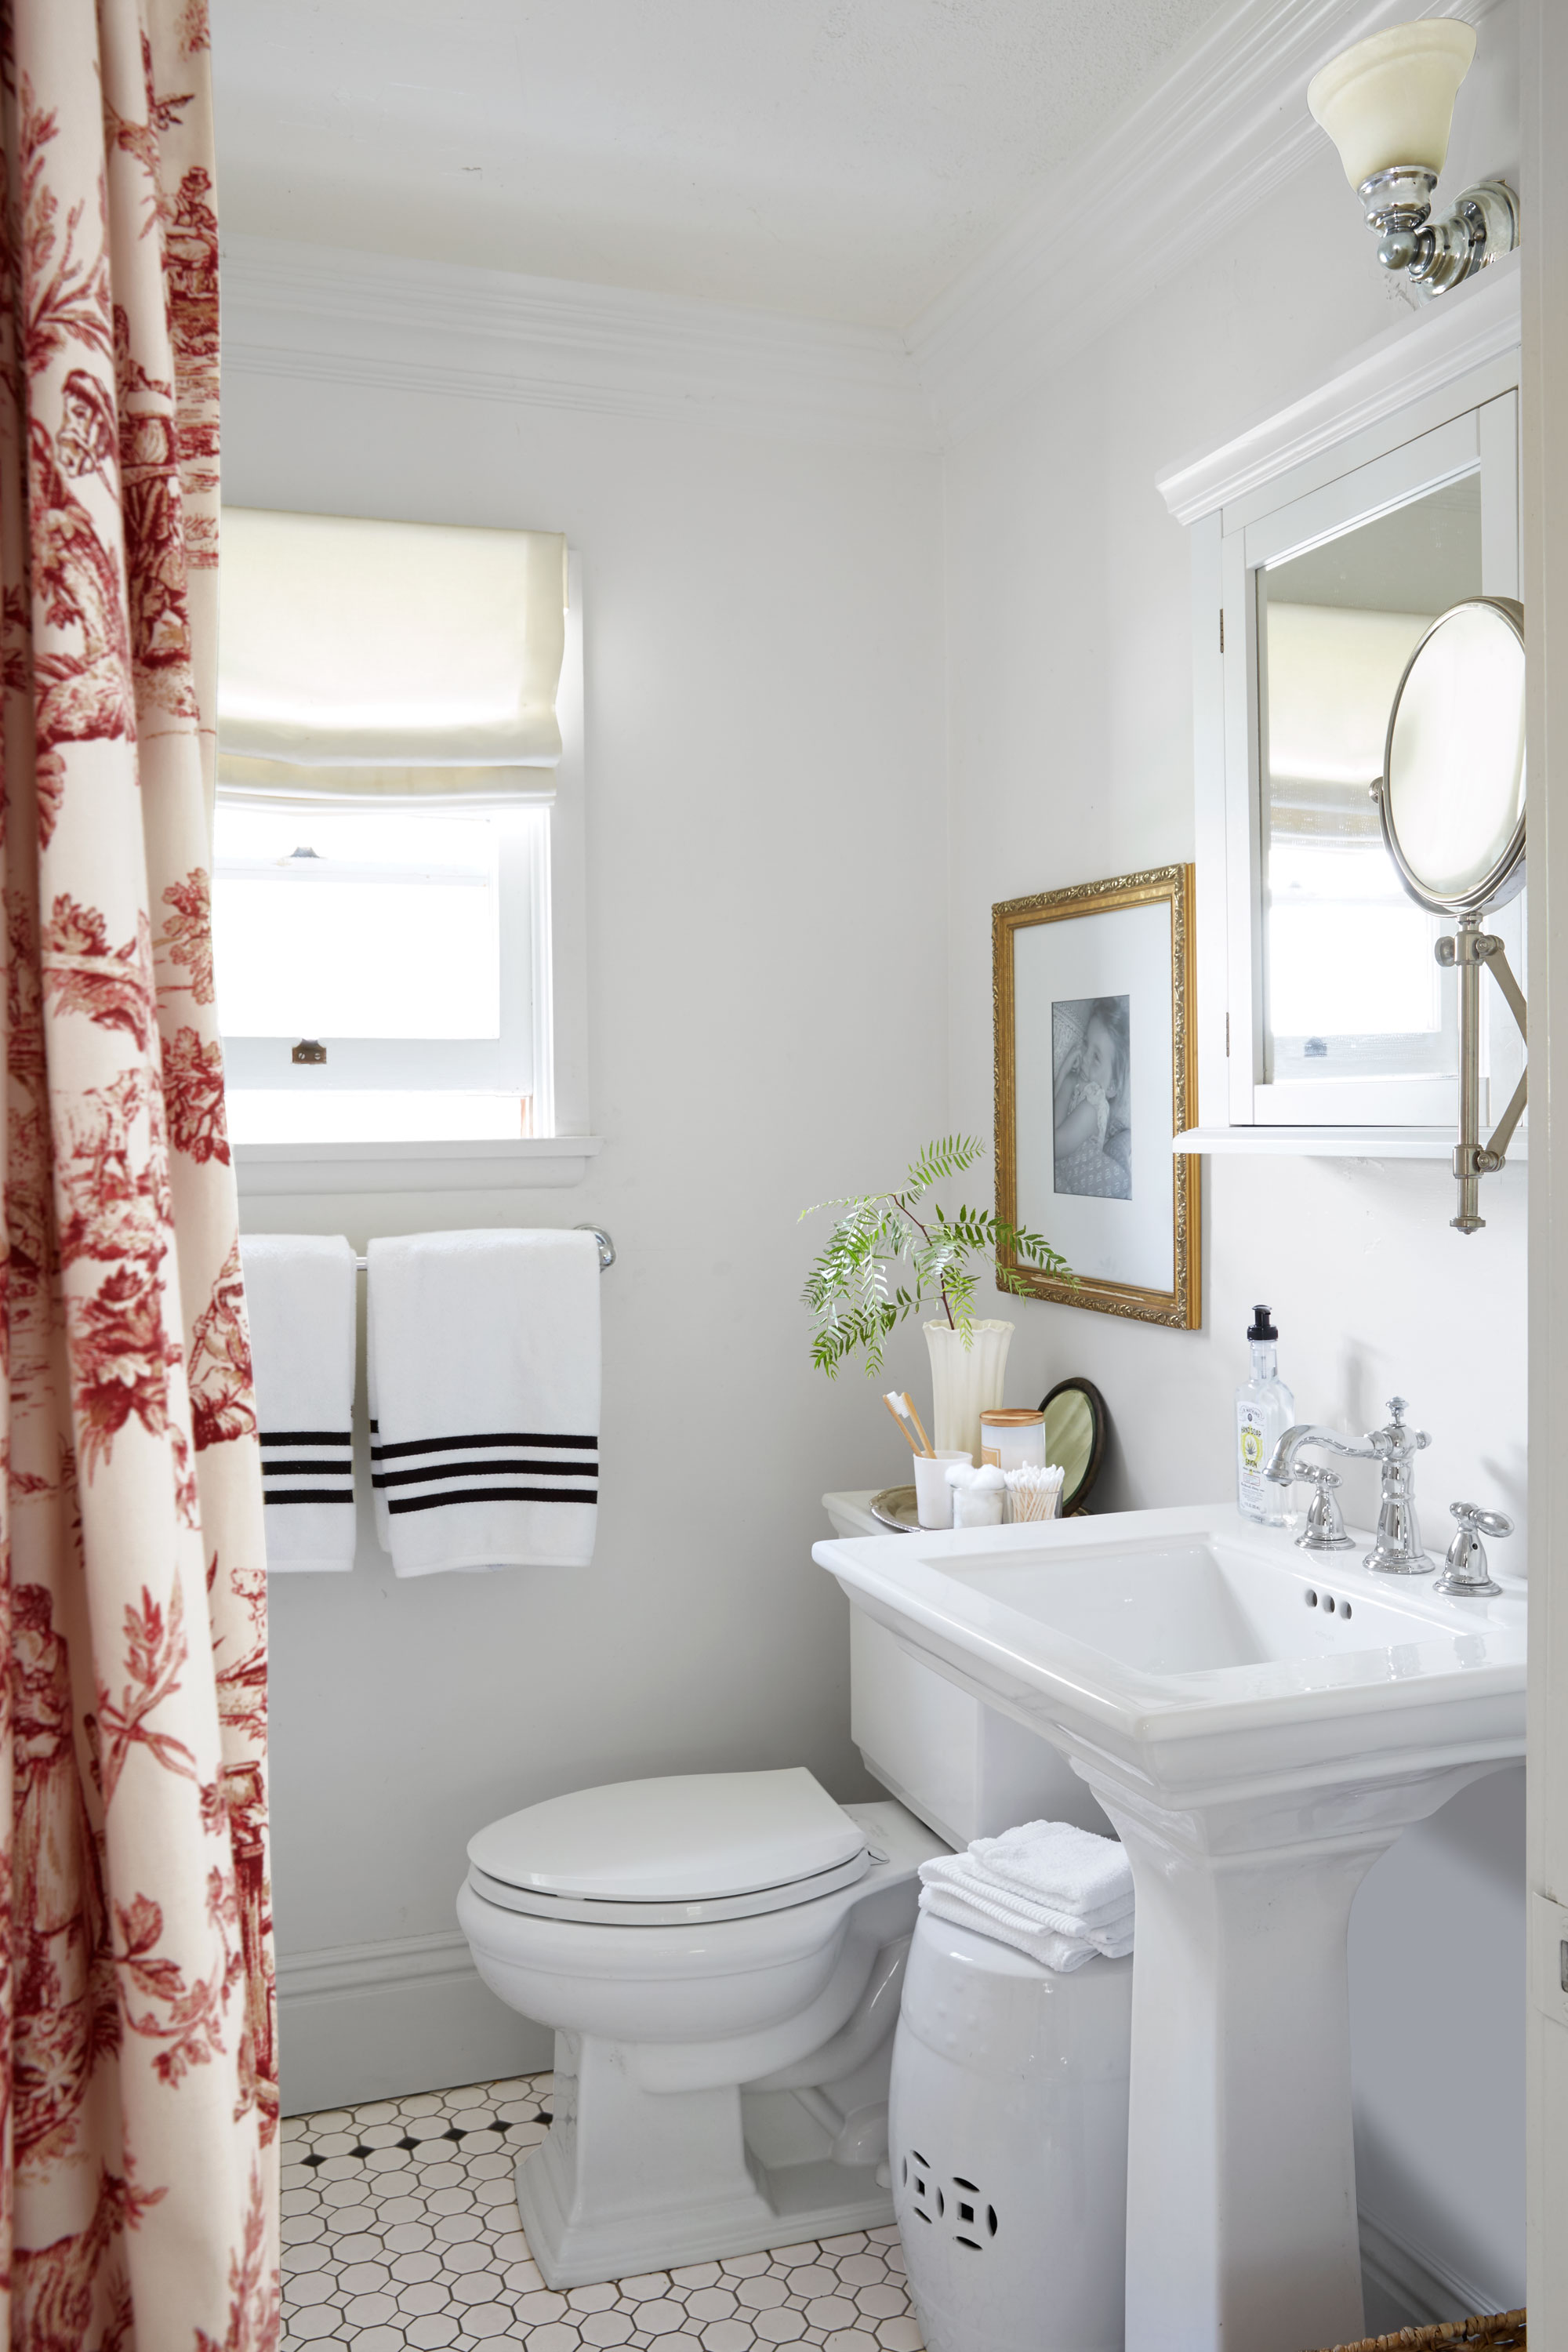 Small Bathroom Decorating Ideas bathroom decoration idea by aqua lane designs shutterfly 80 Best Bathroom Decorating Ideas Decor Design Inspirations For Bathrooms